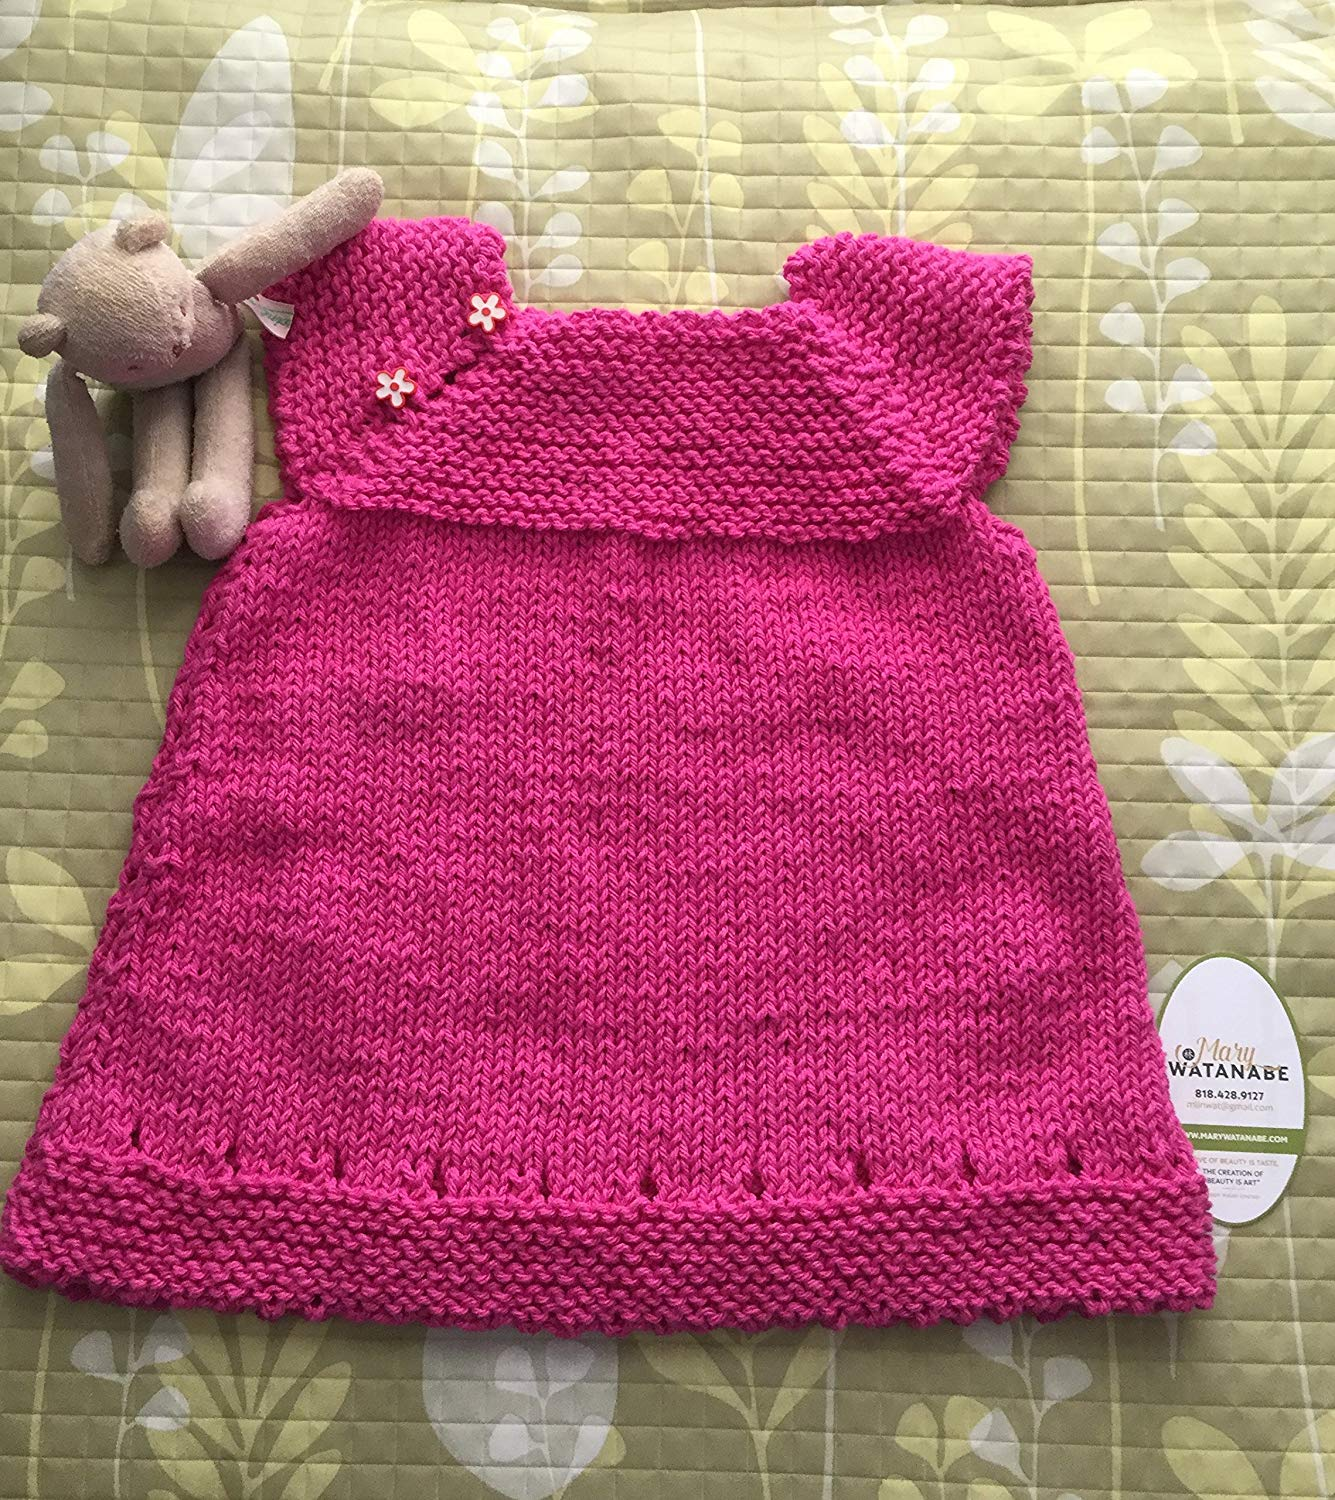 750cf94d386eba Get Quotations · Cute Hand Knit Baby Sweater Dress--Rosy Pink Cotton Yarn  with 2 Flower Buttons